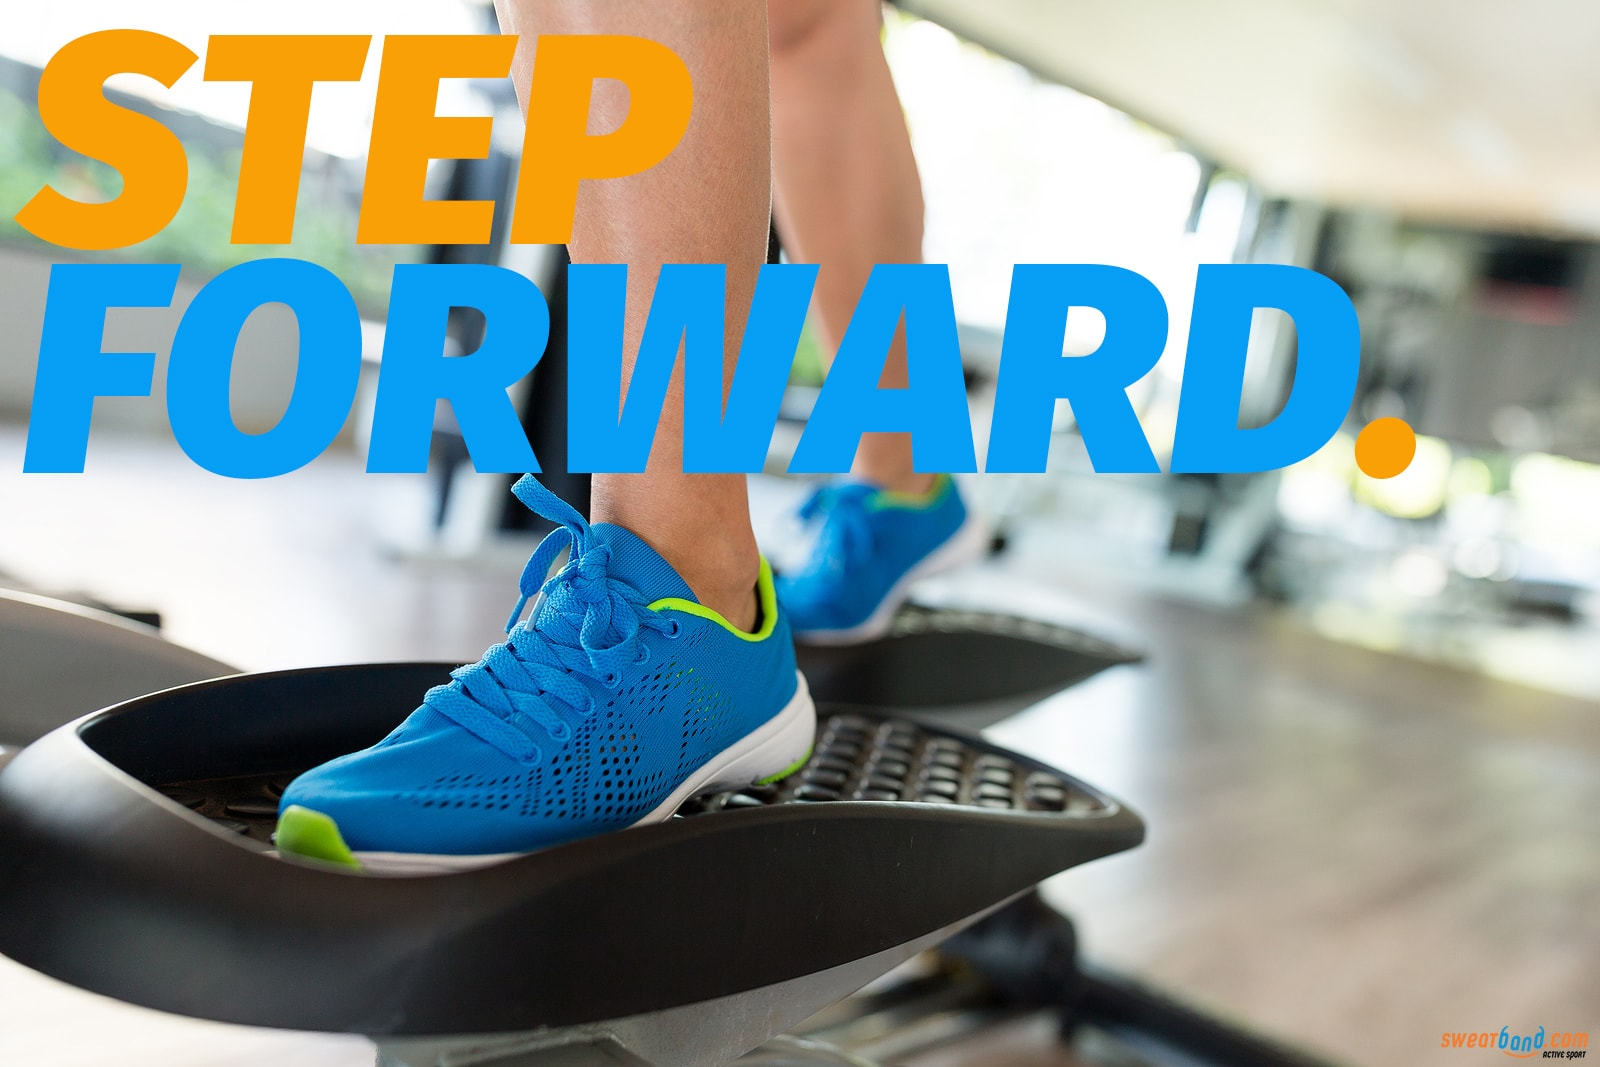 Try forwards and backwards elliptical motion on your cross trainer for better results